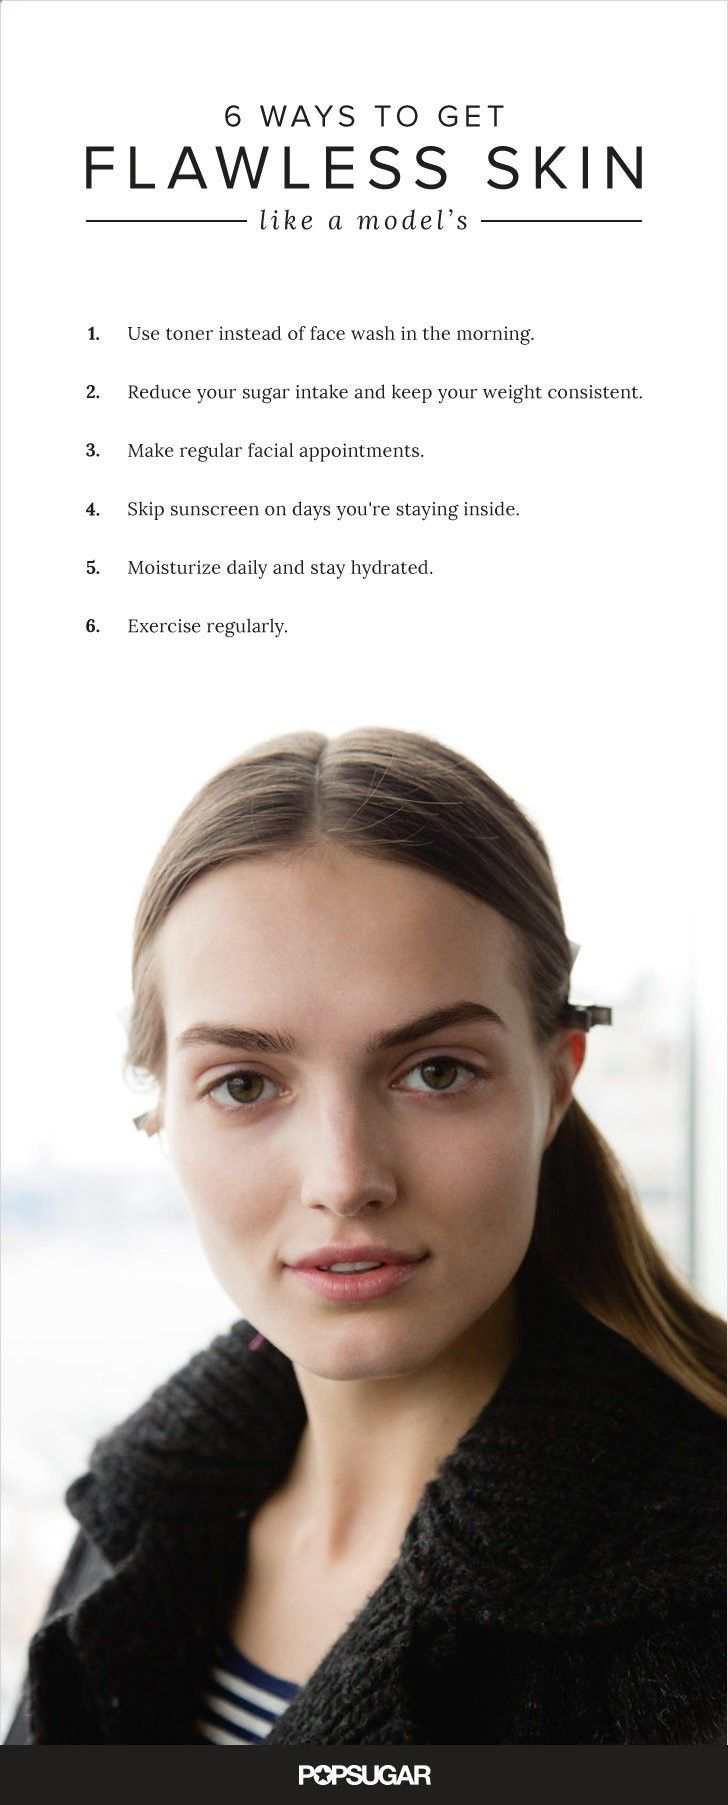 Model Skin Care Tips | POPSUGAR Beautyhttps://livingnaturalhealth.myshopify.com/collections/types?constraint=masks-and-toners&q=Facial+Care